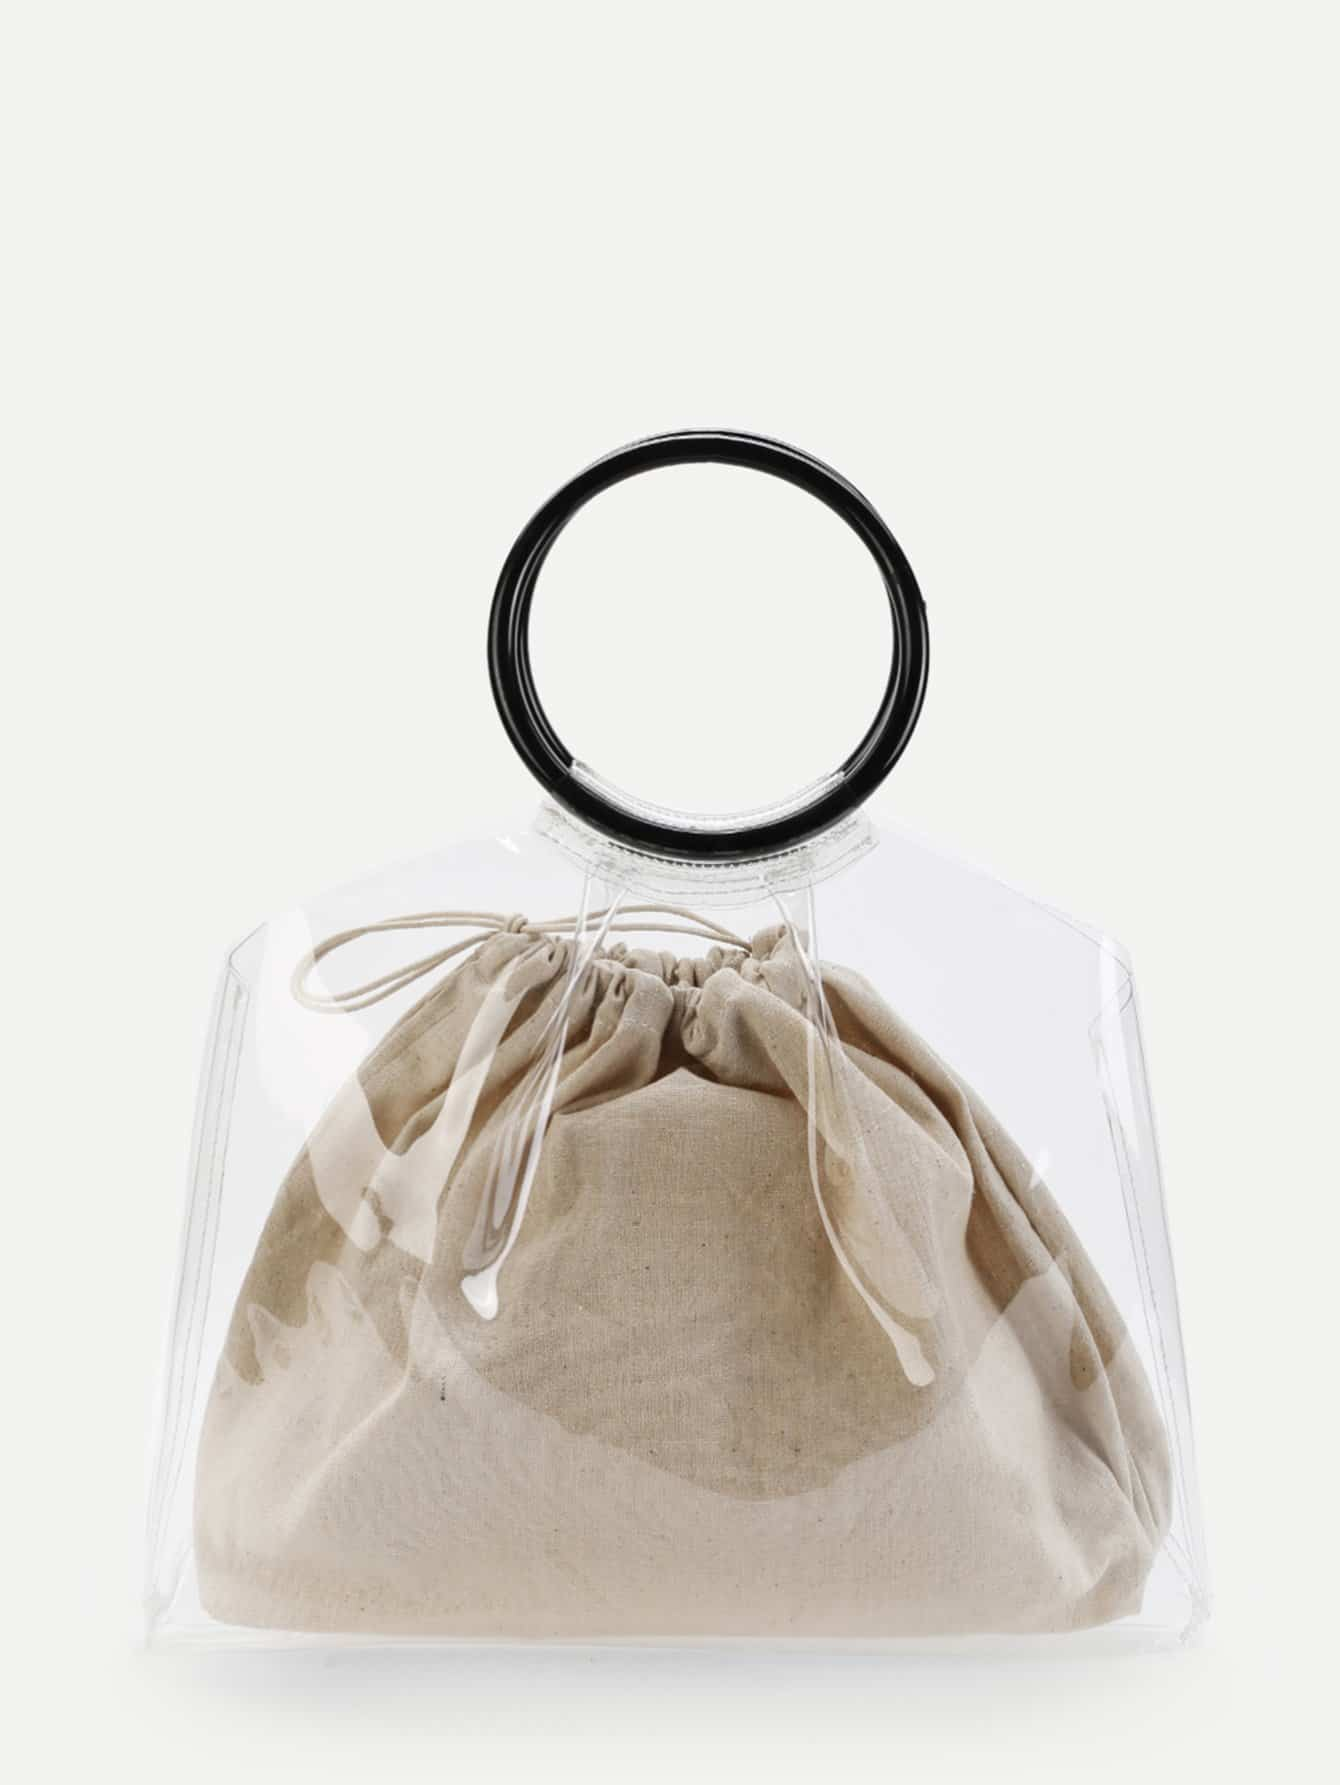 Ring Handle Tote Bag With Inner Pouch net tote bag with inner pouch